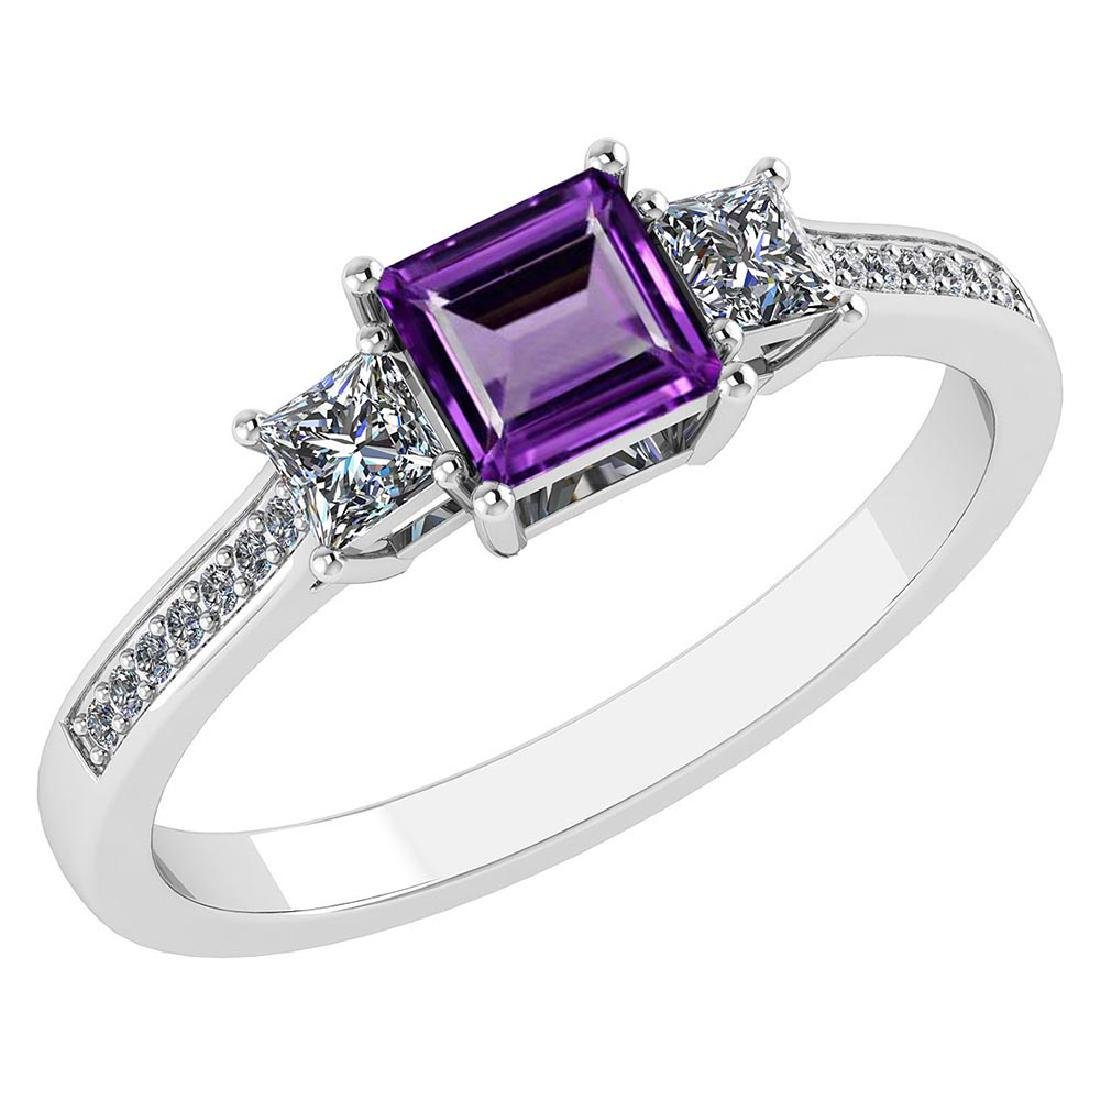 Certified 1.18CTW Genuine Amethyst And Diamond 14K Whit